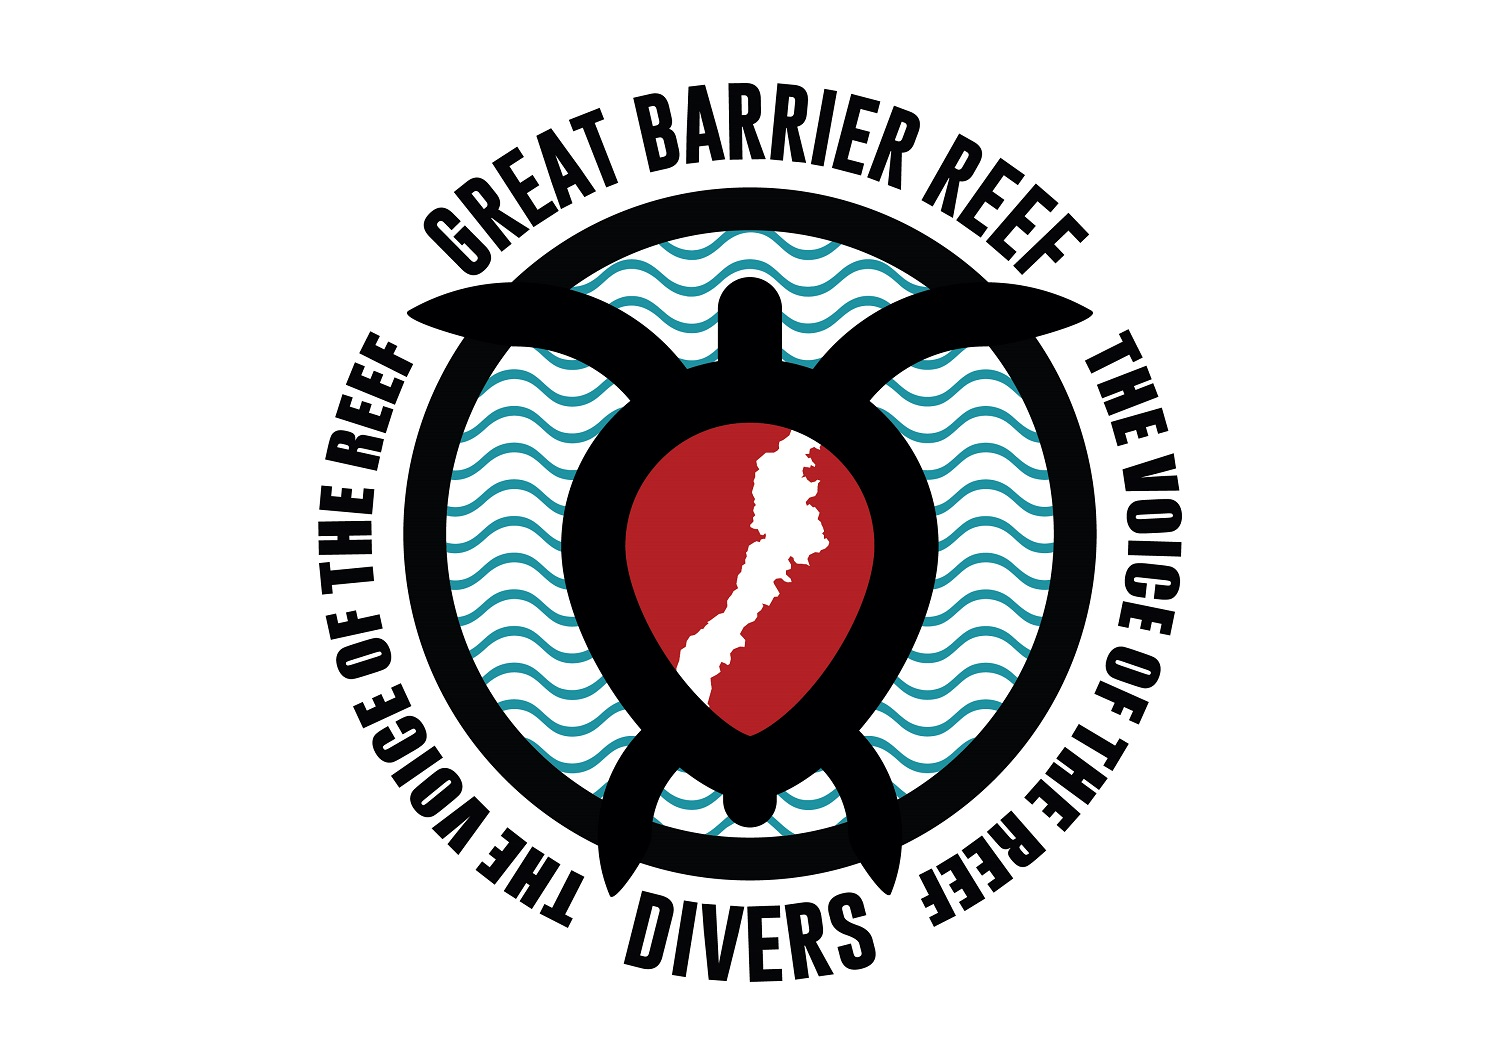 http://gbrdivers.org/